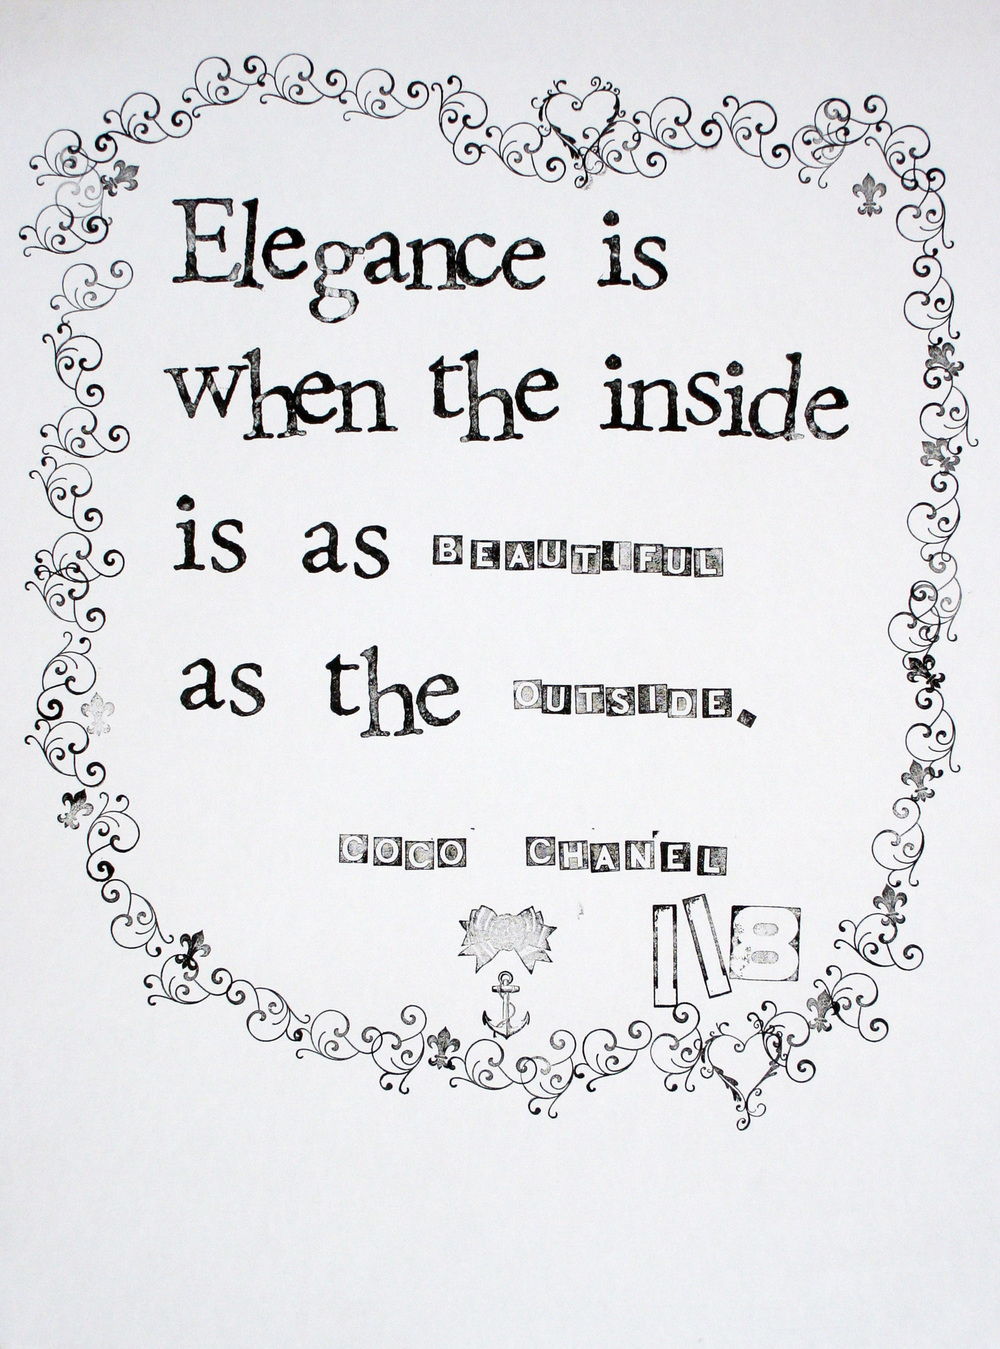 """Elegance is when the inside is as beautiful as the outside."" - Coco Chanel"